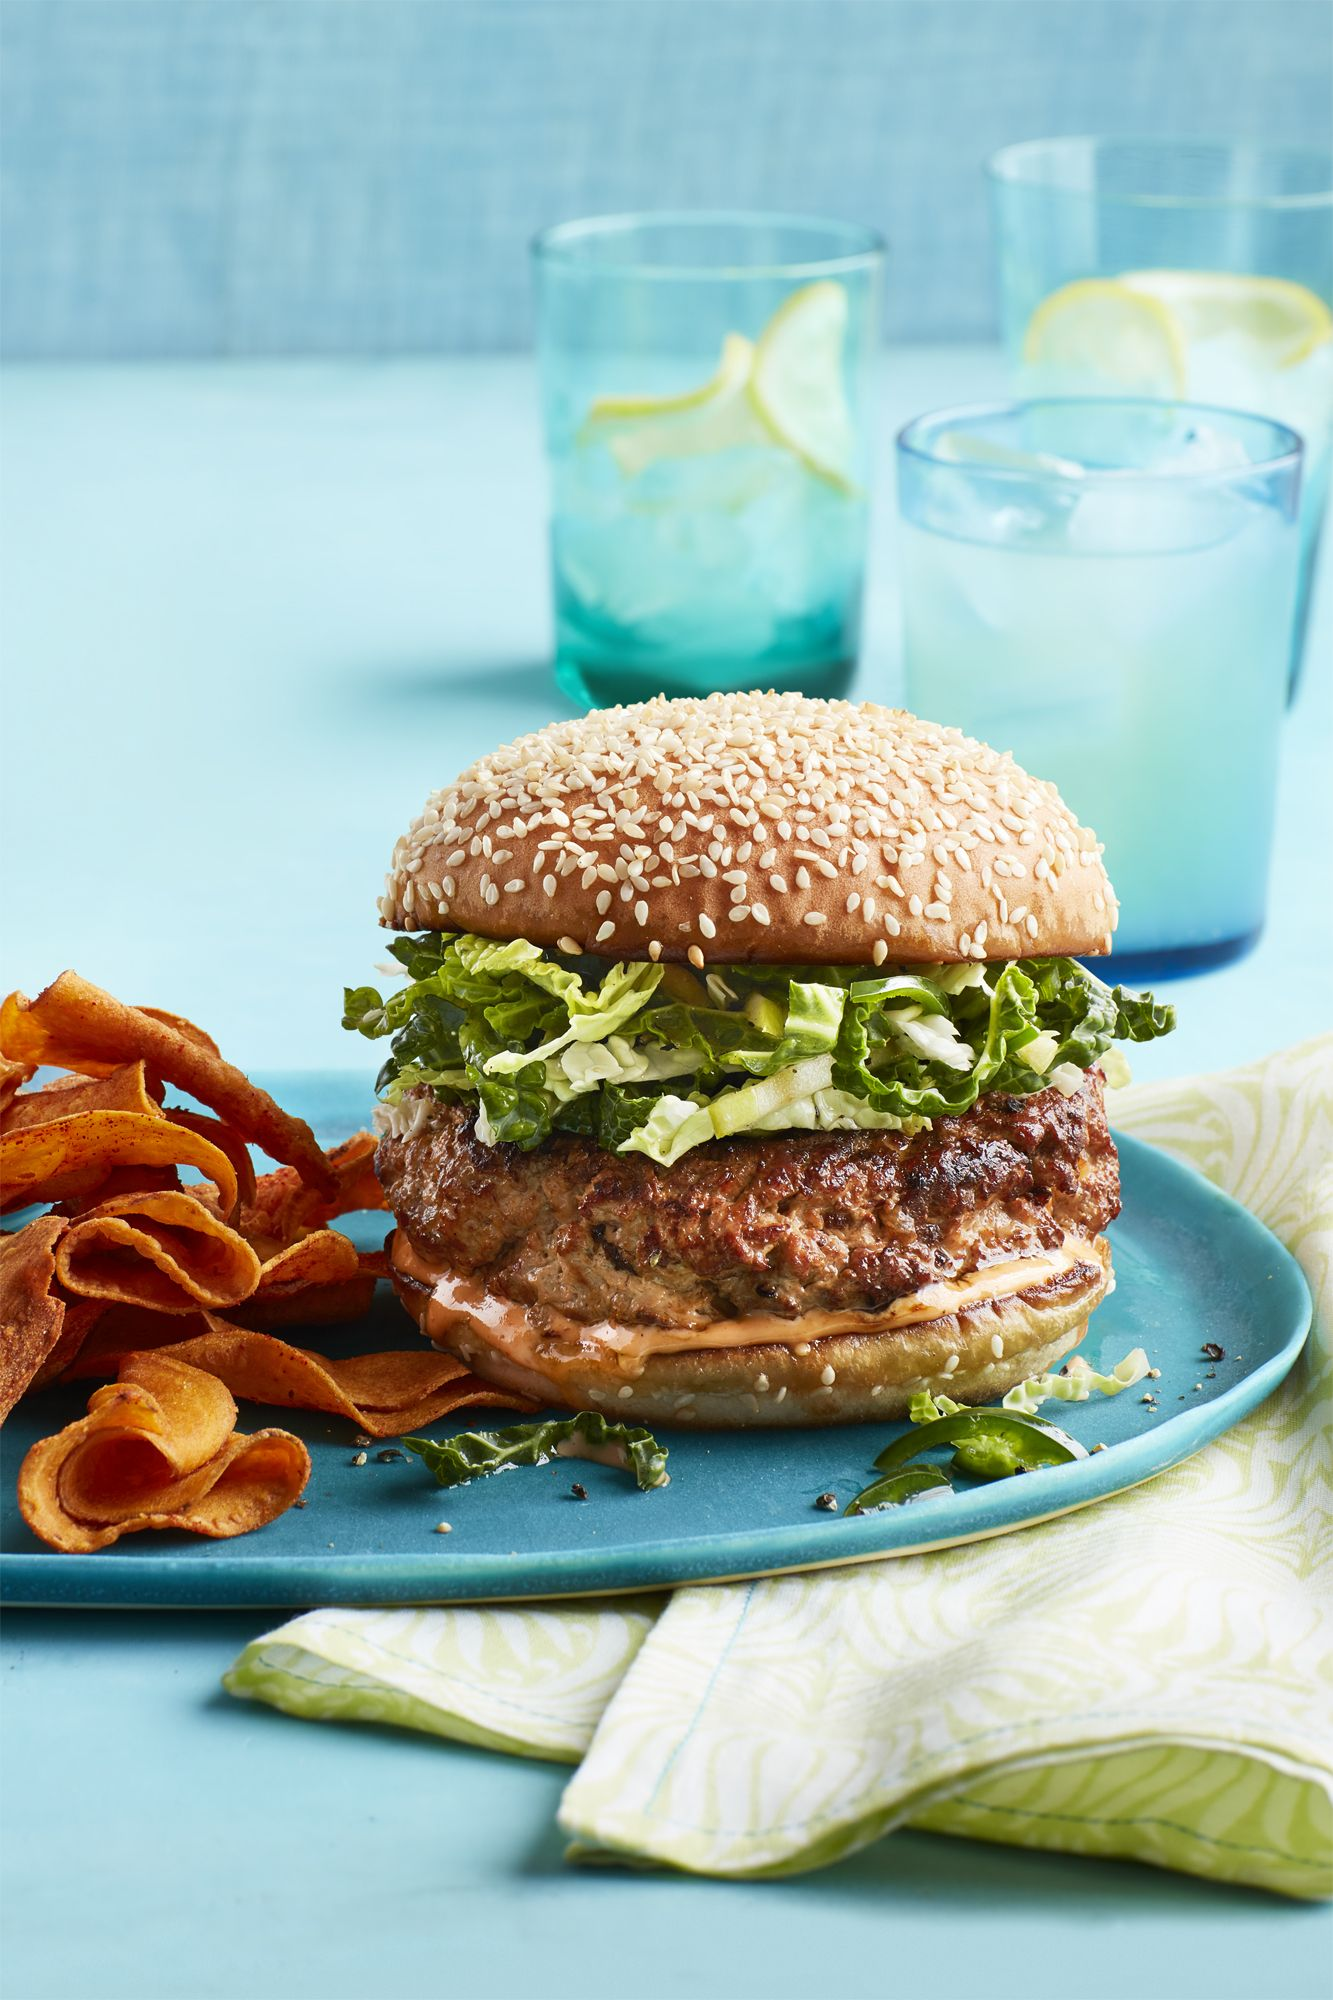 Heart Healthy Recipes - Turkey Burgers and Slaw with Sweet Potato Chips